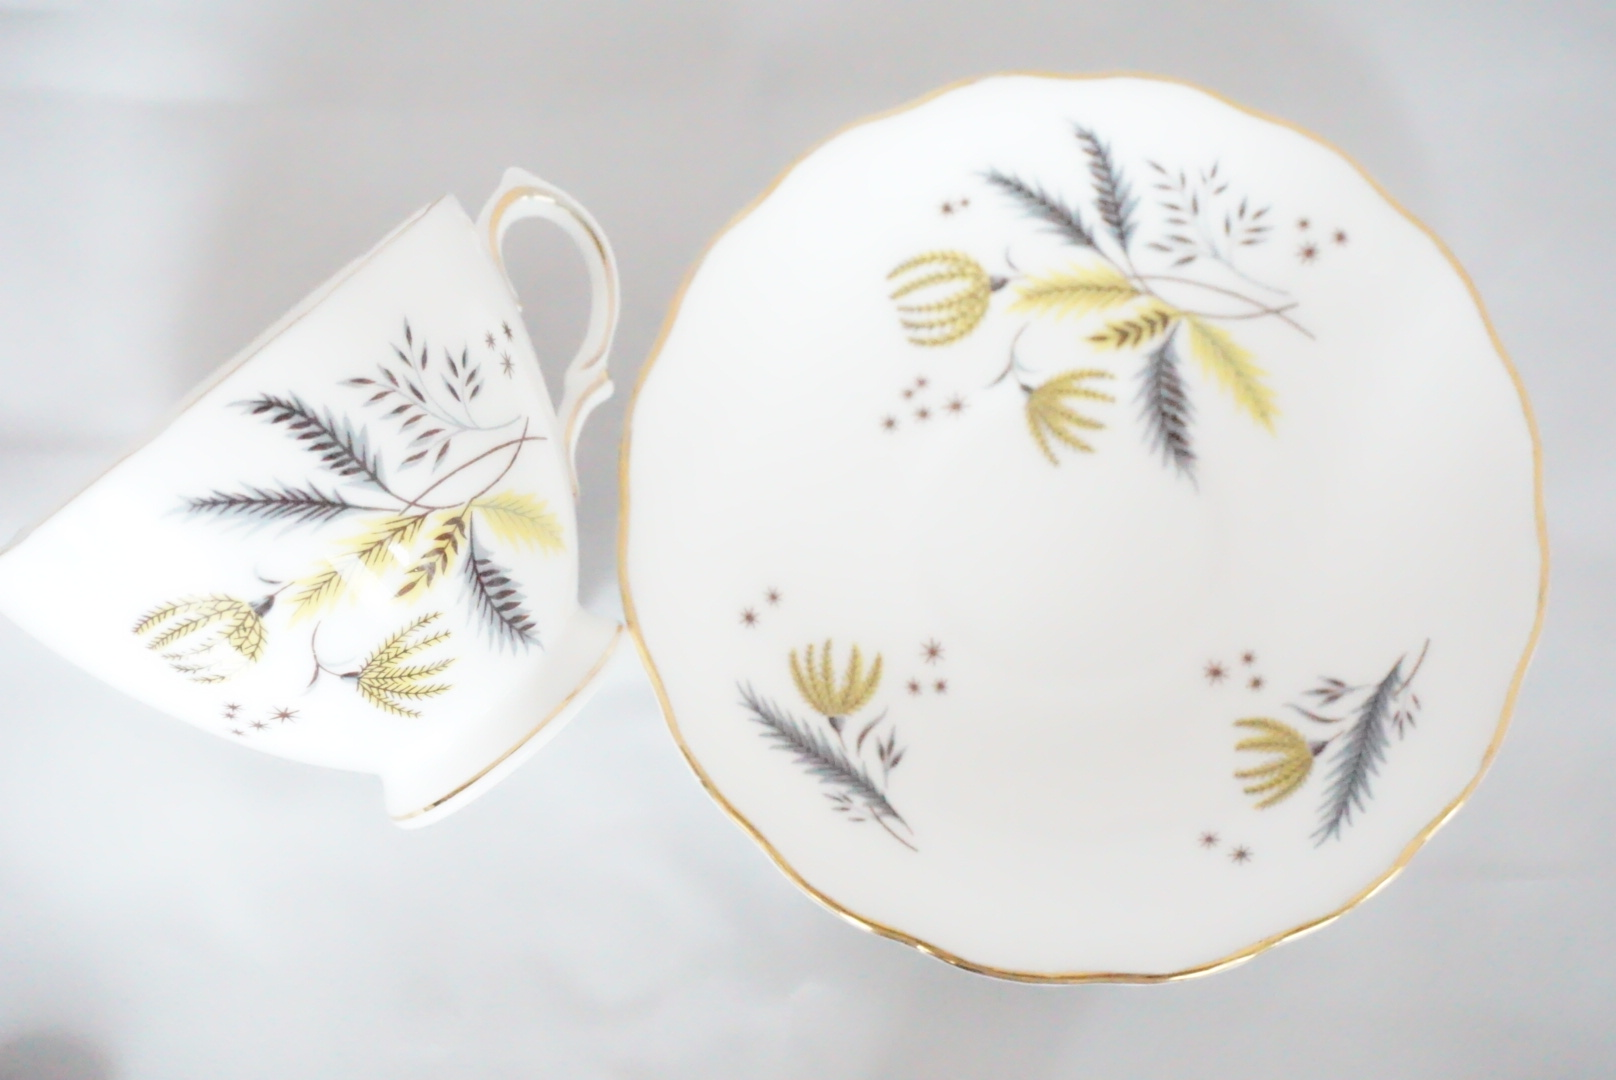 Alice and Hare offer wonderfully scented candles in beautifully vintage tea cups that owner Alicia Doiron sources from all over the world.